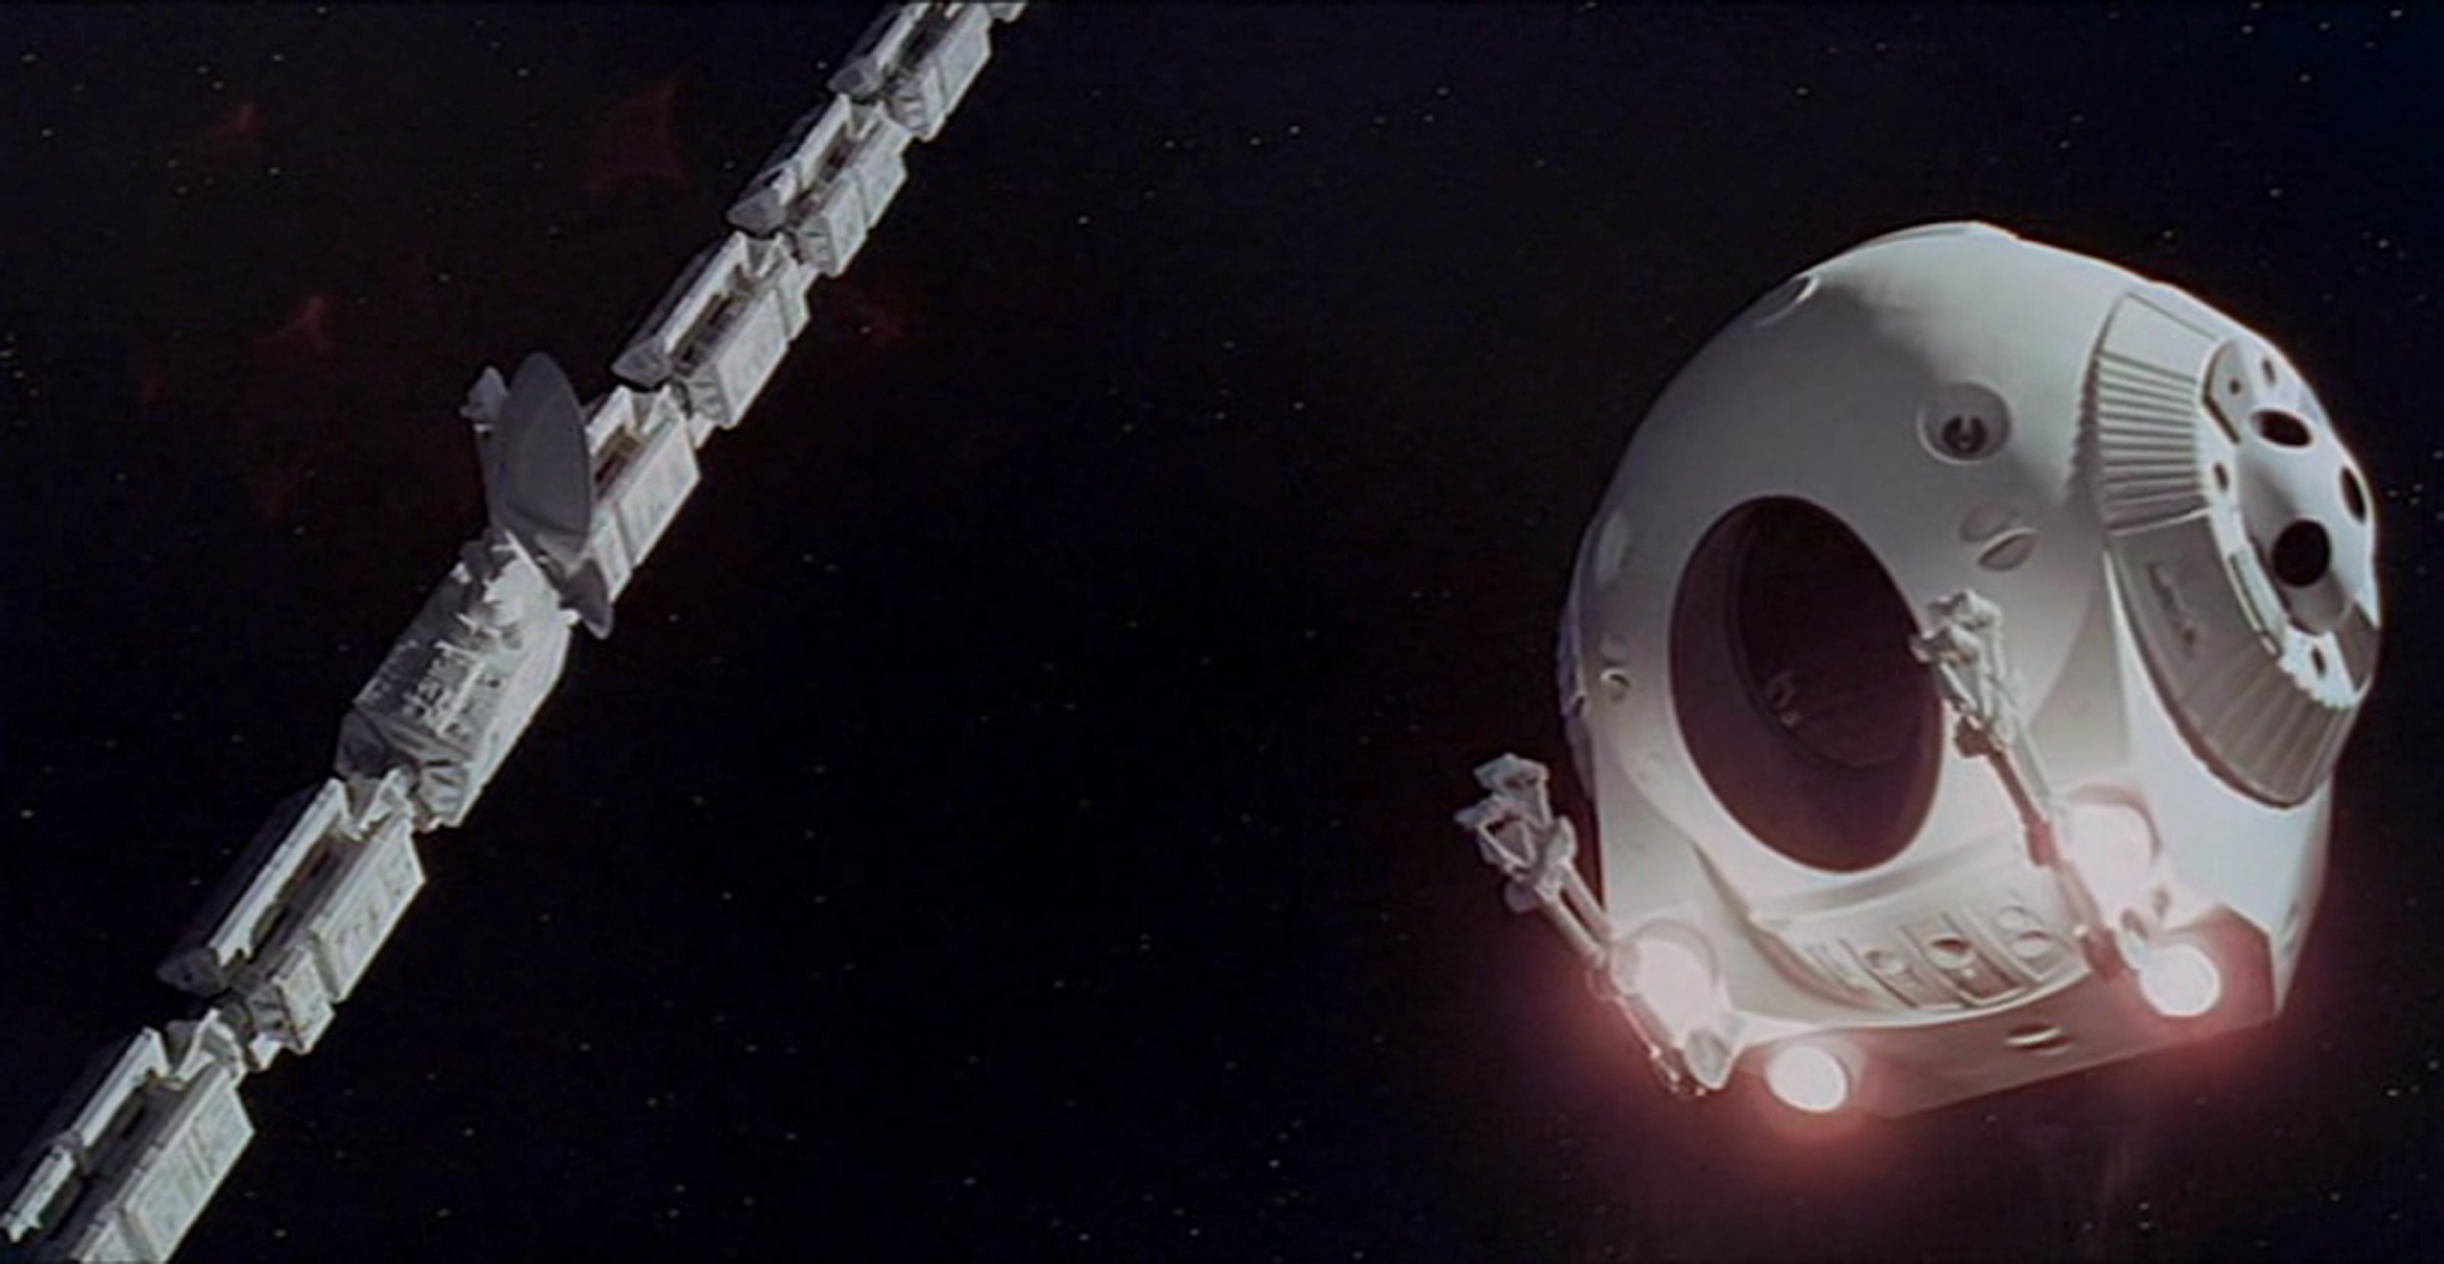 2001 A Space Odyssey Hd Wallpaper Background Image 2444x1264